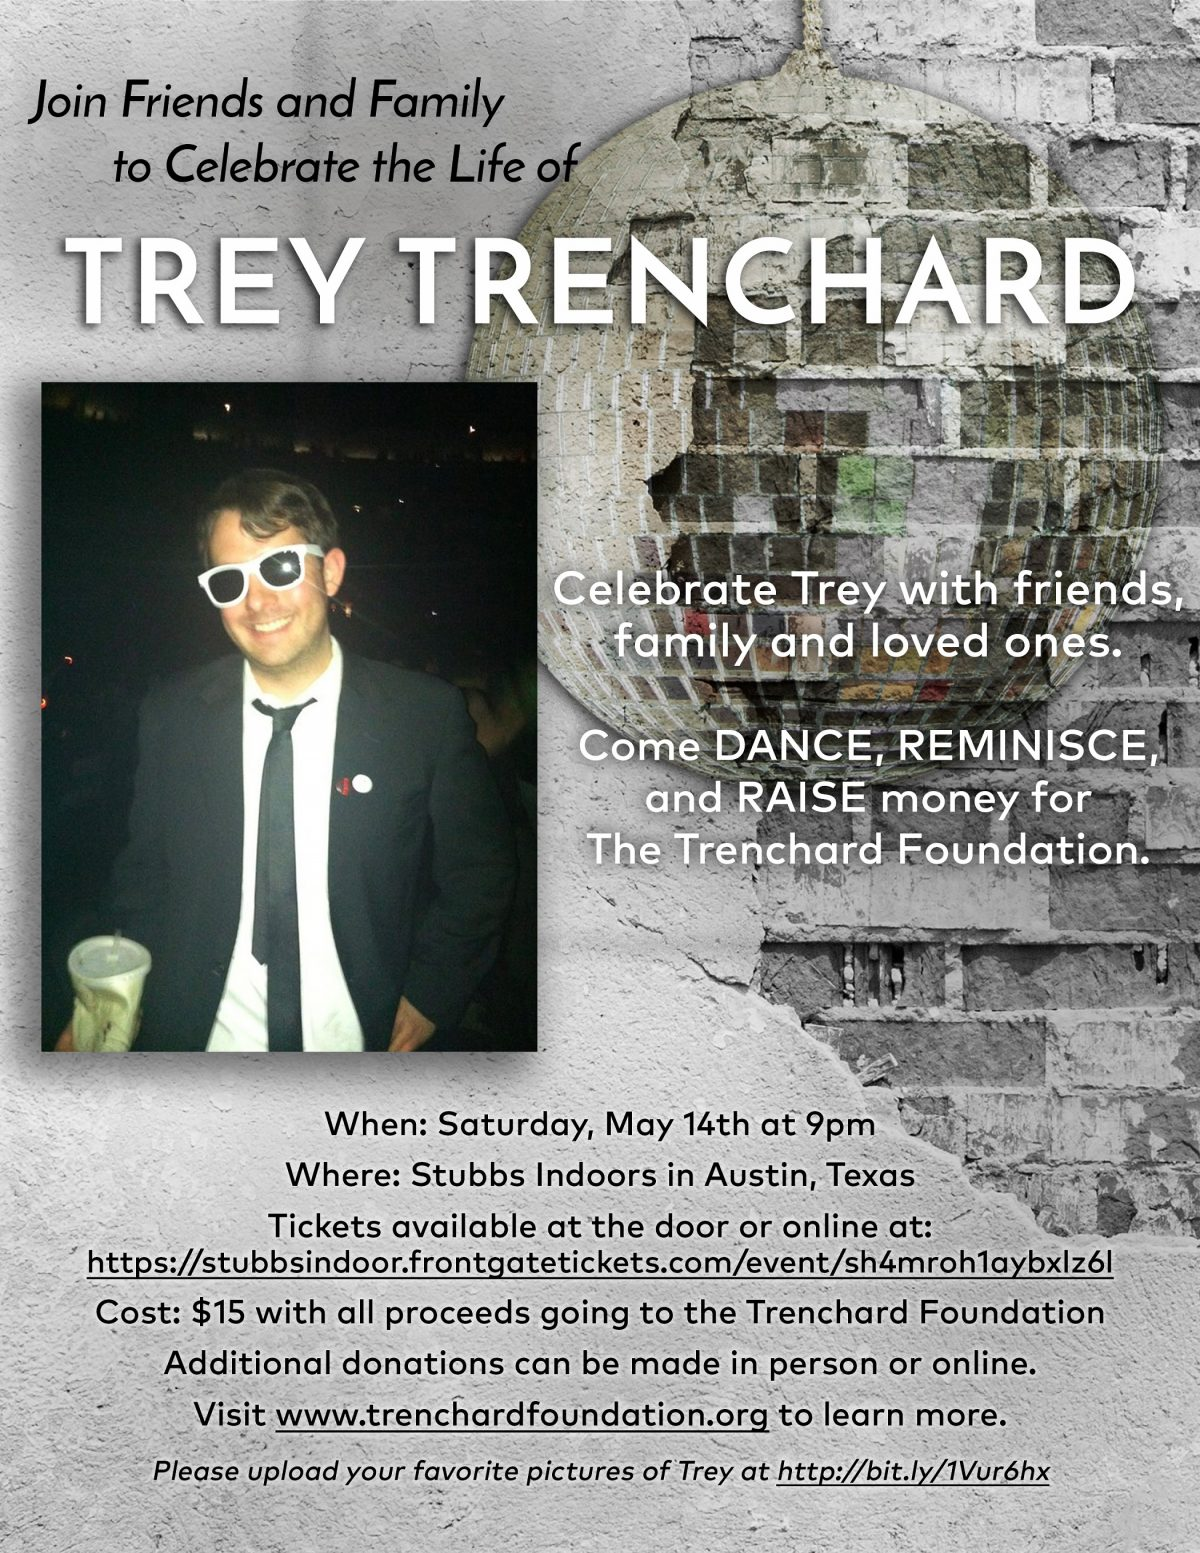 Fundraiser in Austin, Texas Honoring Trey Trenchard